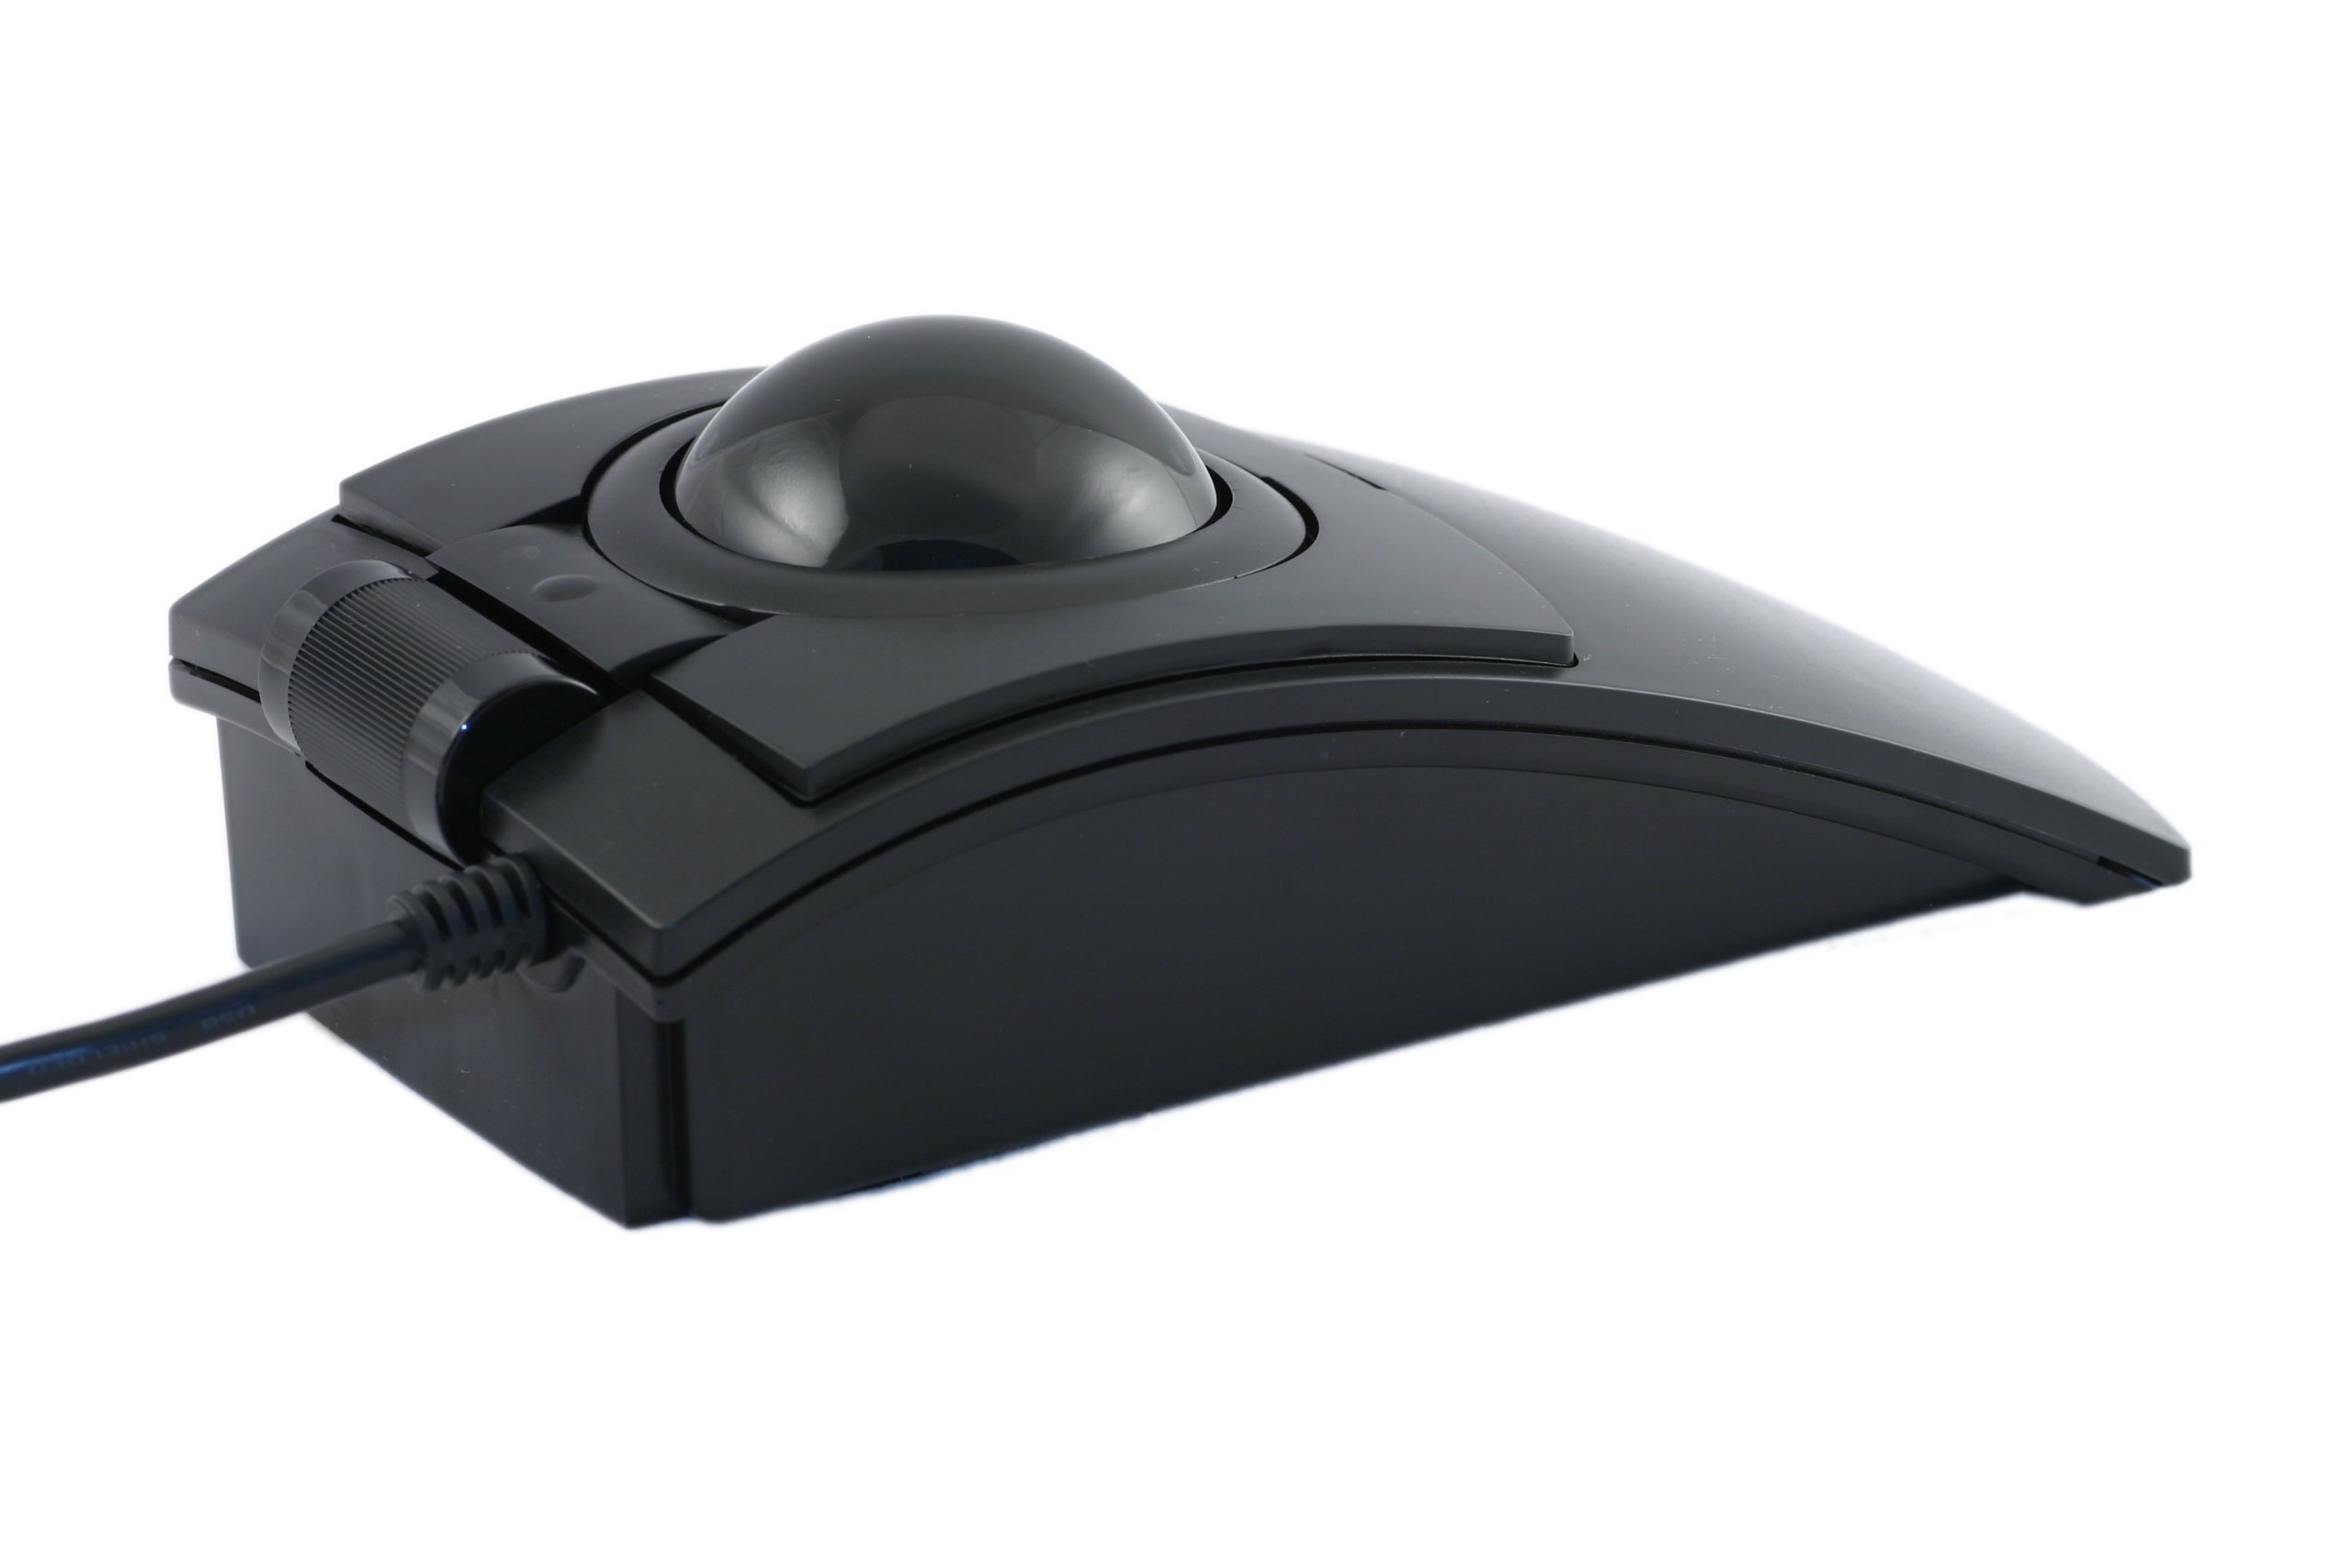 CST2545W (L-TRAC) USB Wired High Performance Trackball, Black - Made in the USA